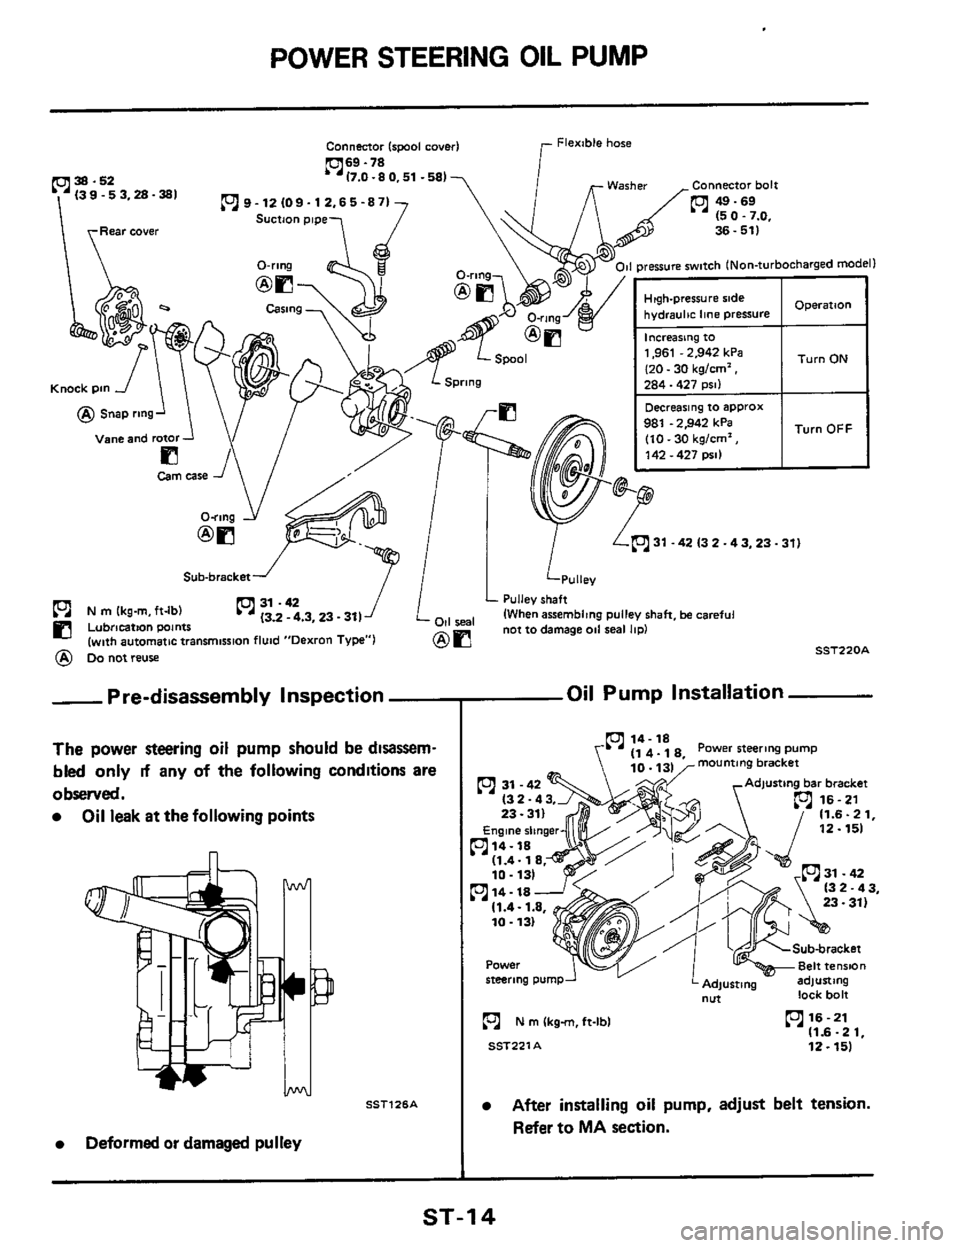 300zx Power Steering Diagram Wiring Schematic Z32 Engine Nissan 1984 Z31 System Workshop Manual Leak